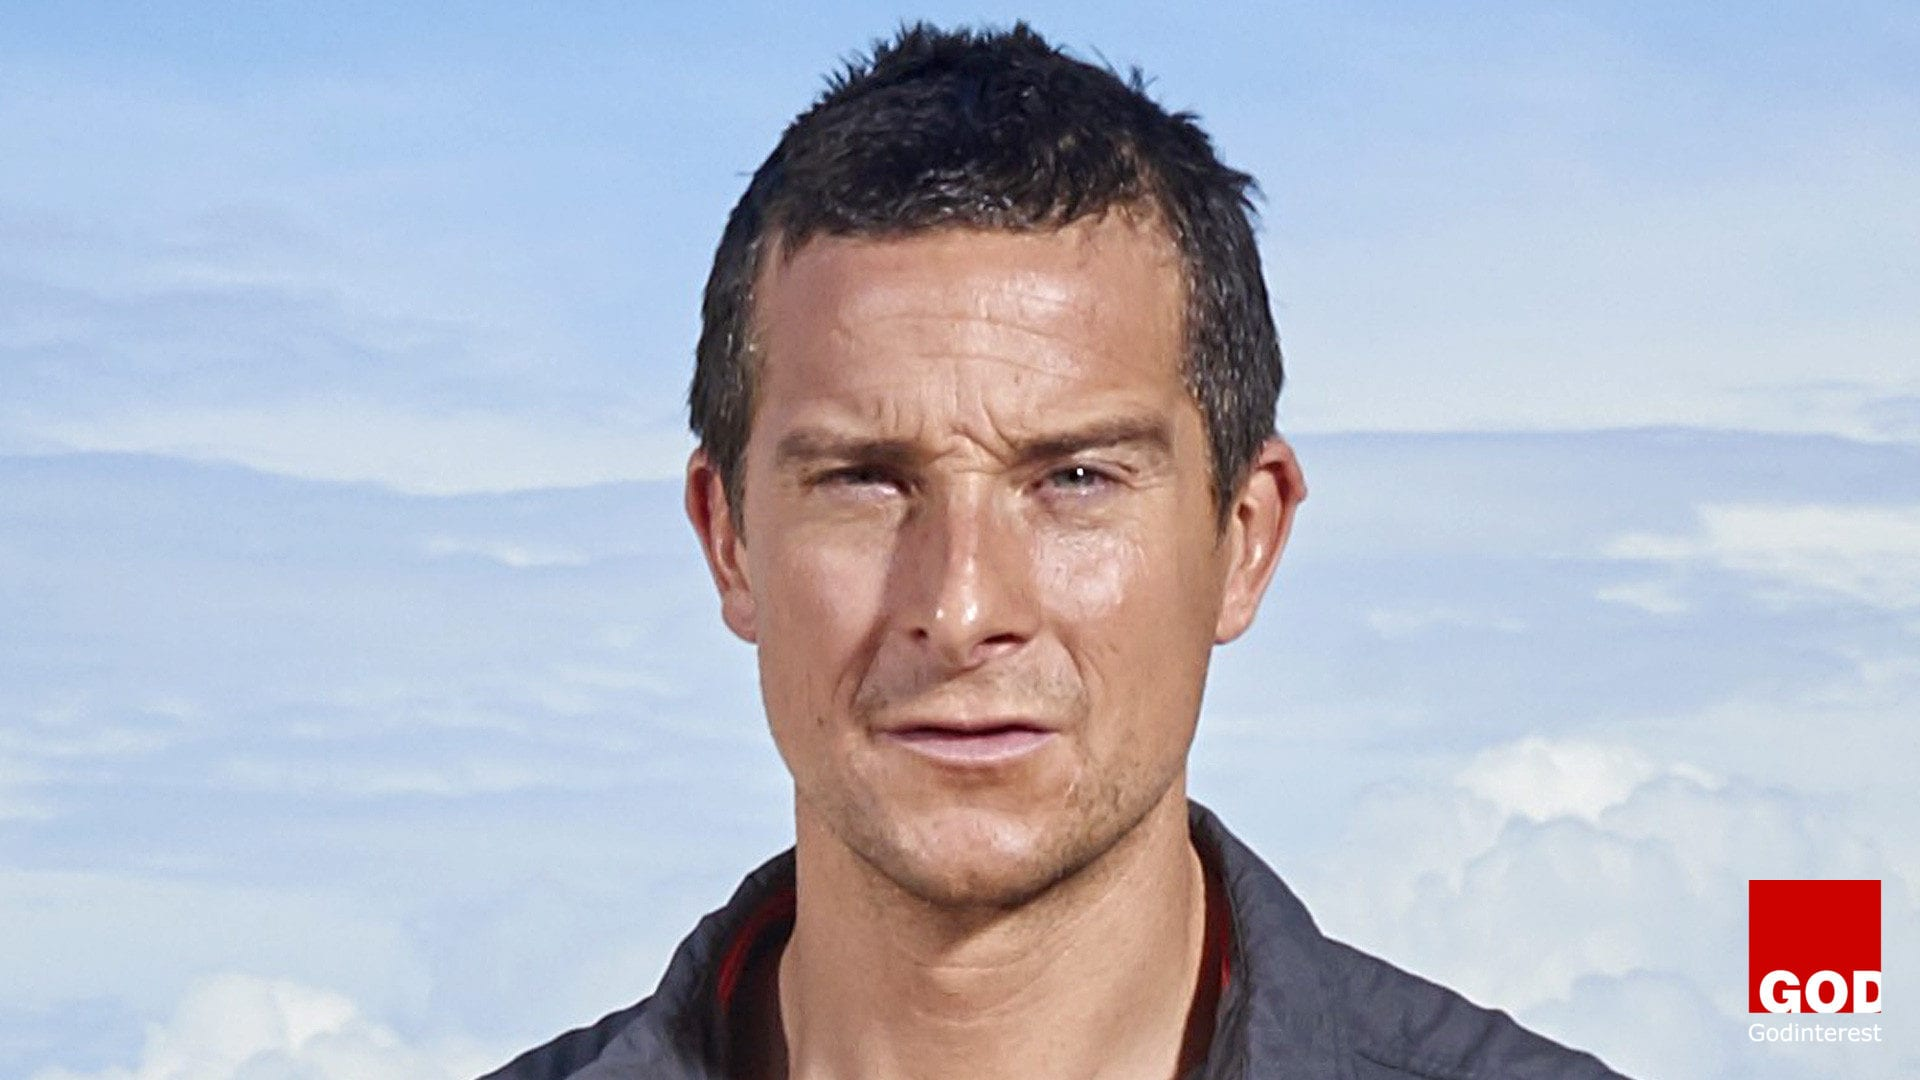 Bear Grylls Shares The Heartbreaking Story That Led To His Faith In Jesus Christ